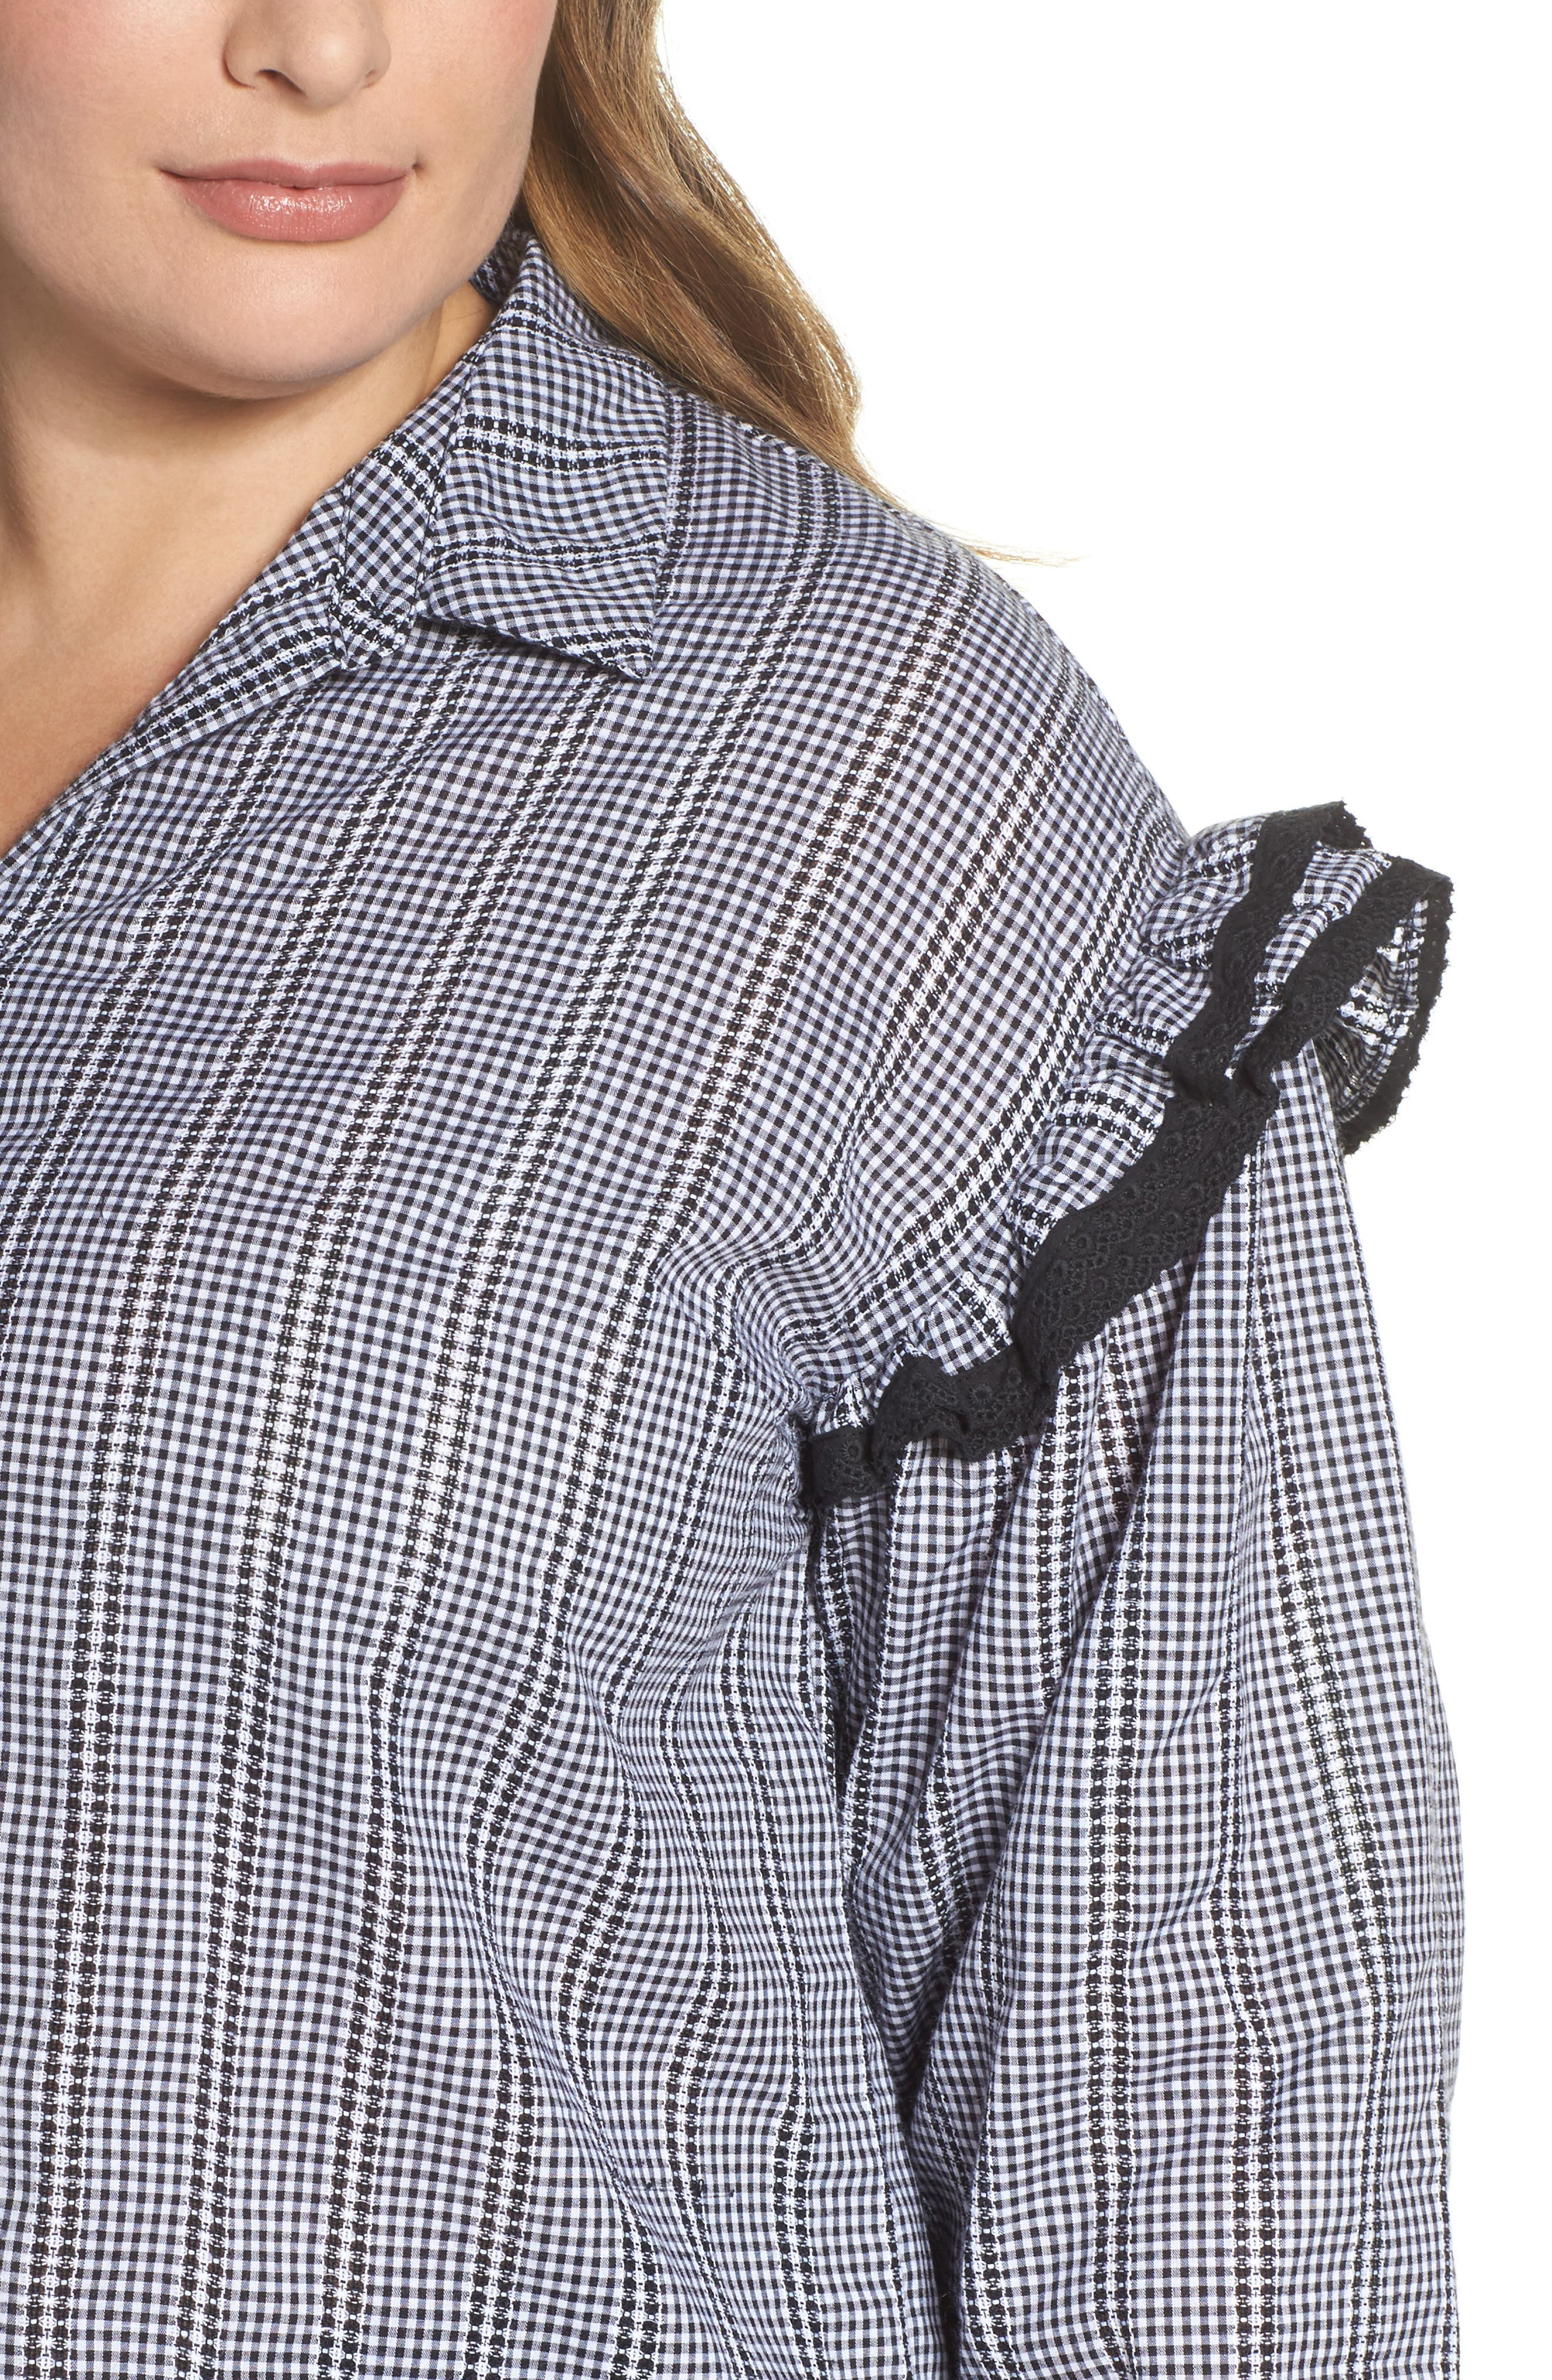 Gingham Ruffle Sleeve Shirt,                             Alternate thumbnail 4, color,                             Multi